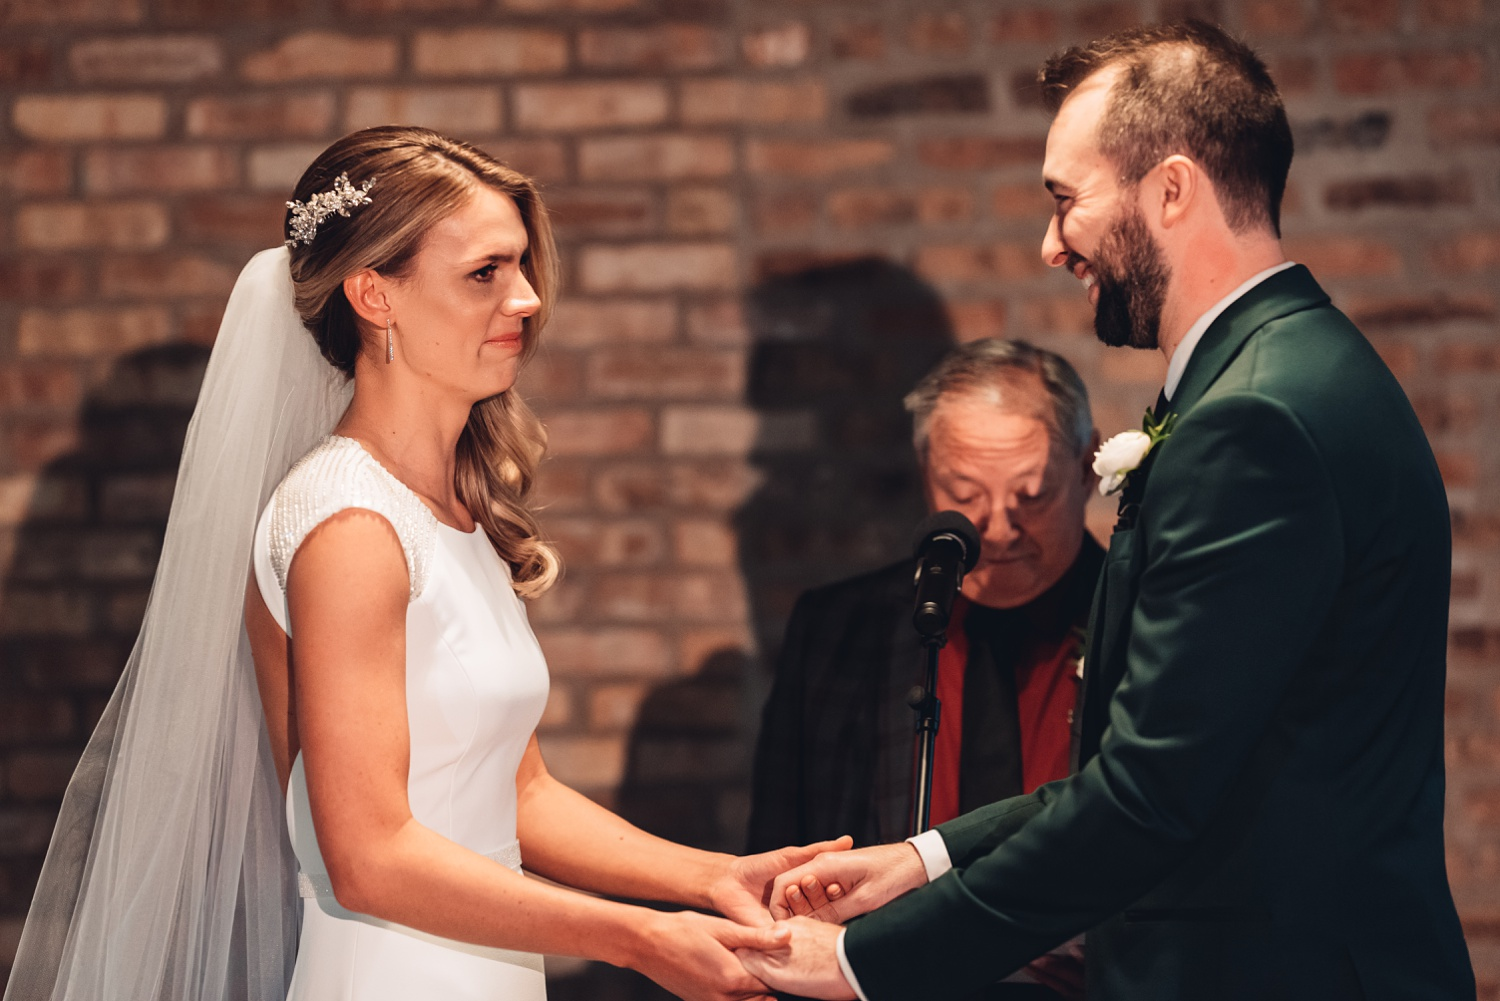 Artifact Events Fall Chicago Wedding - The Adamkovi ceremony